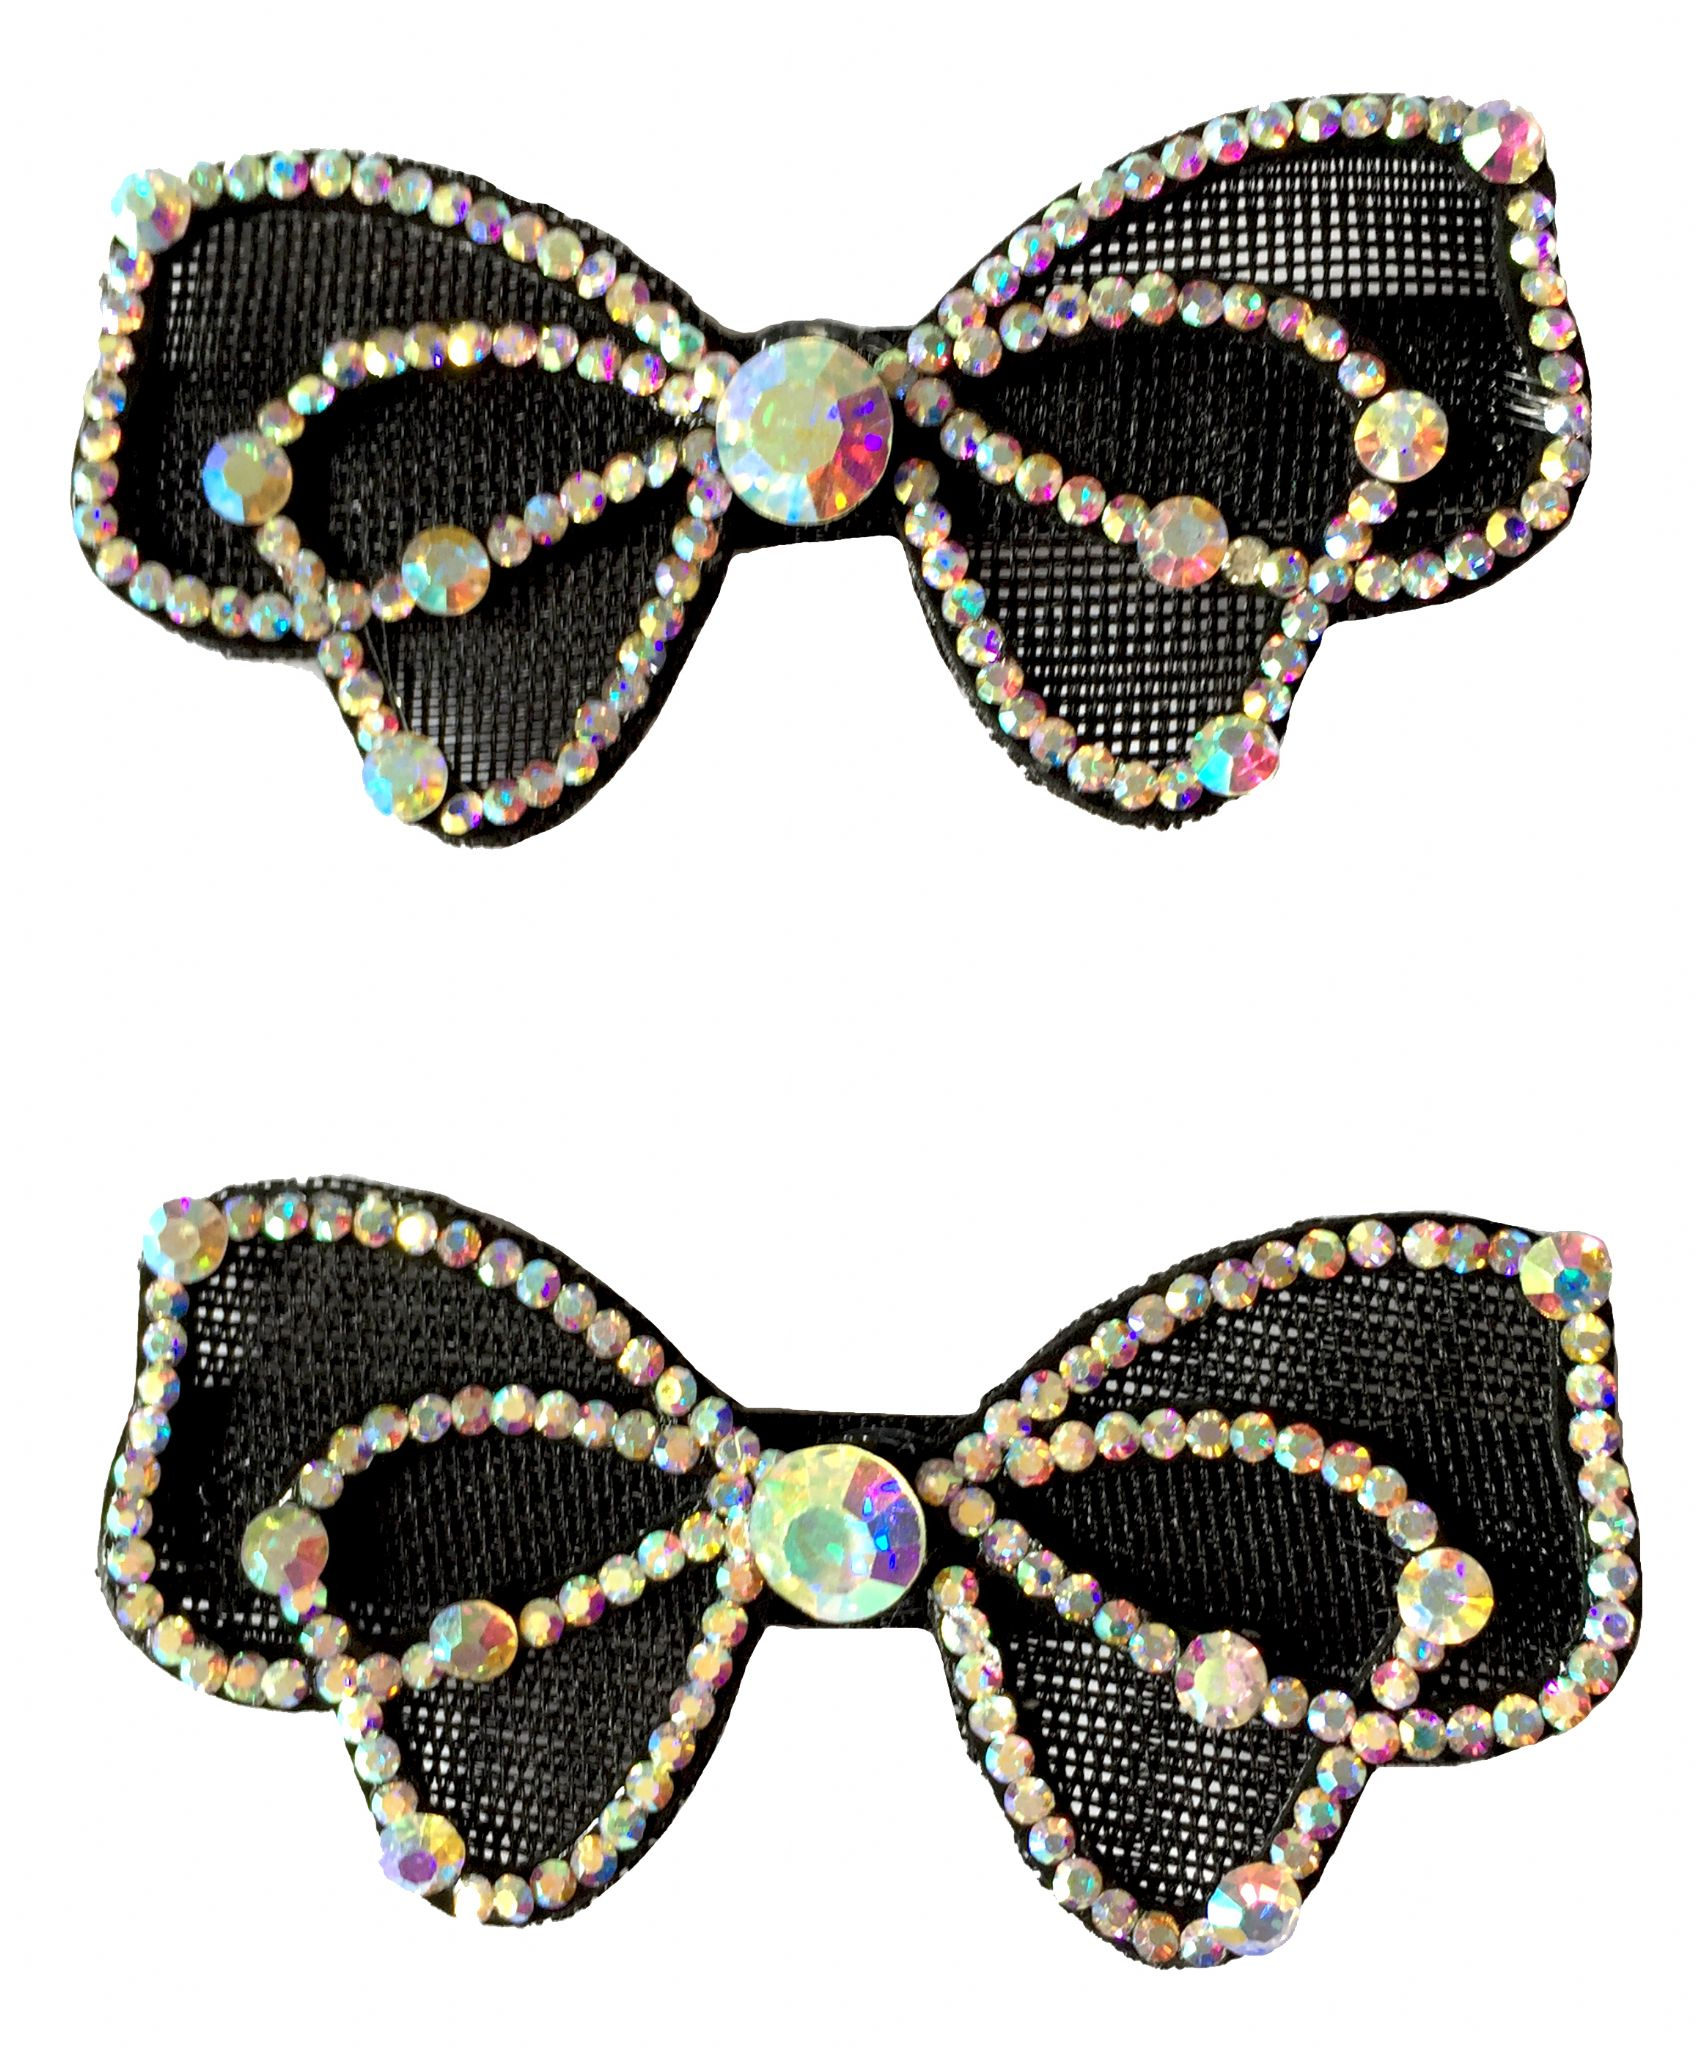 http://www.conmigolondon.co.uk/ekmps/shops/conmigo/images/1.-al0040-eye-catching-black-bow-with-colourful-sequin-hair-slids-2-pieces-15478-p.jpg